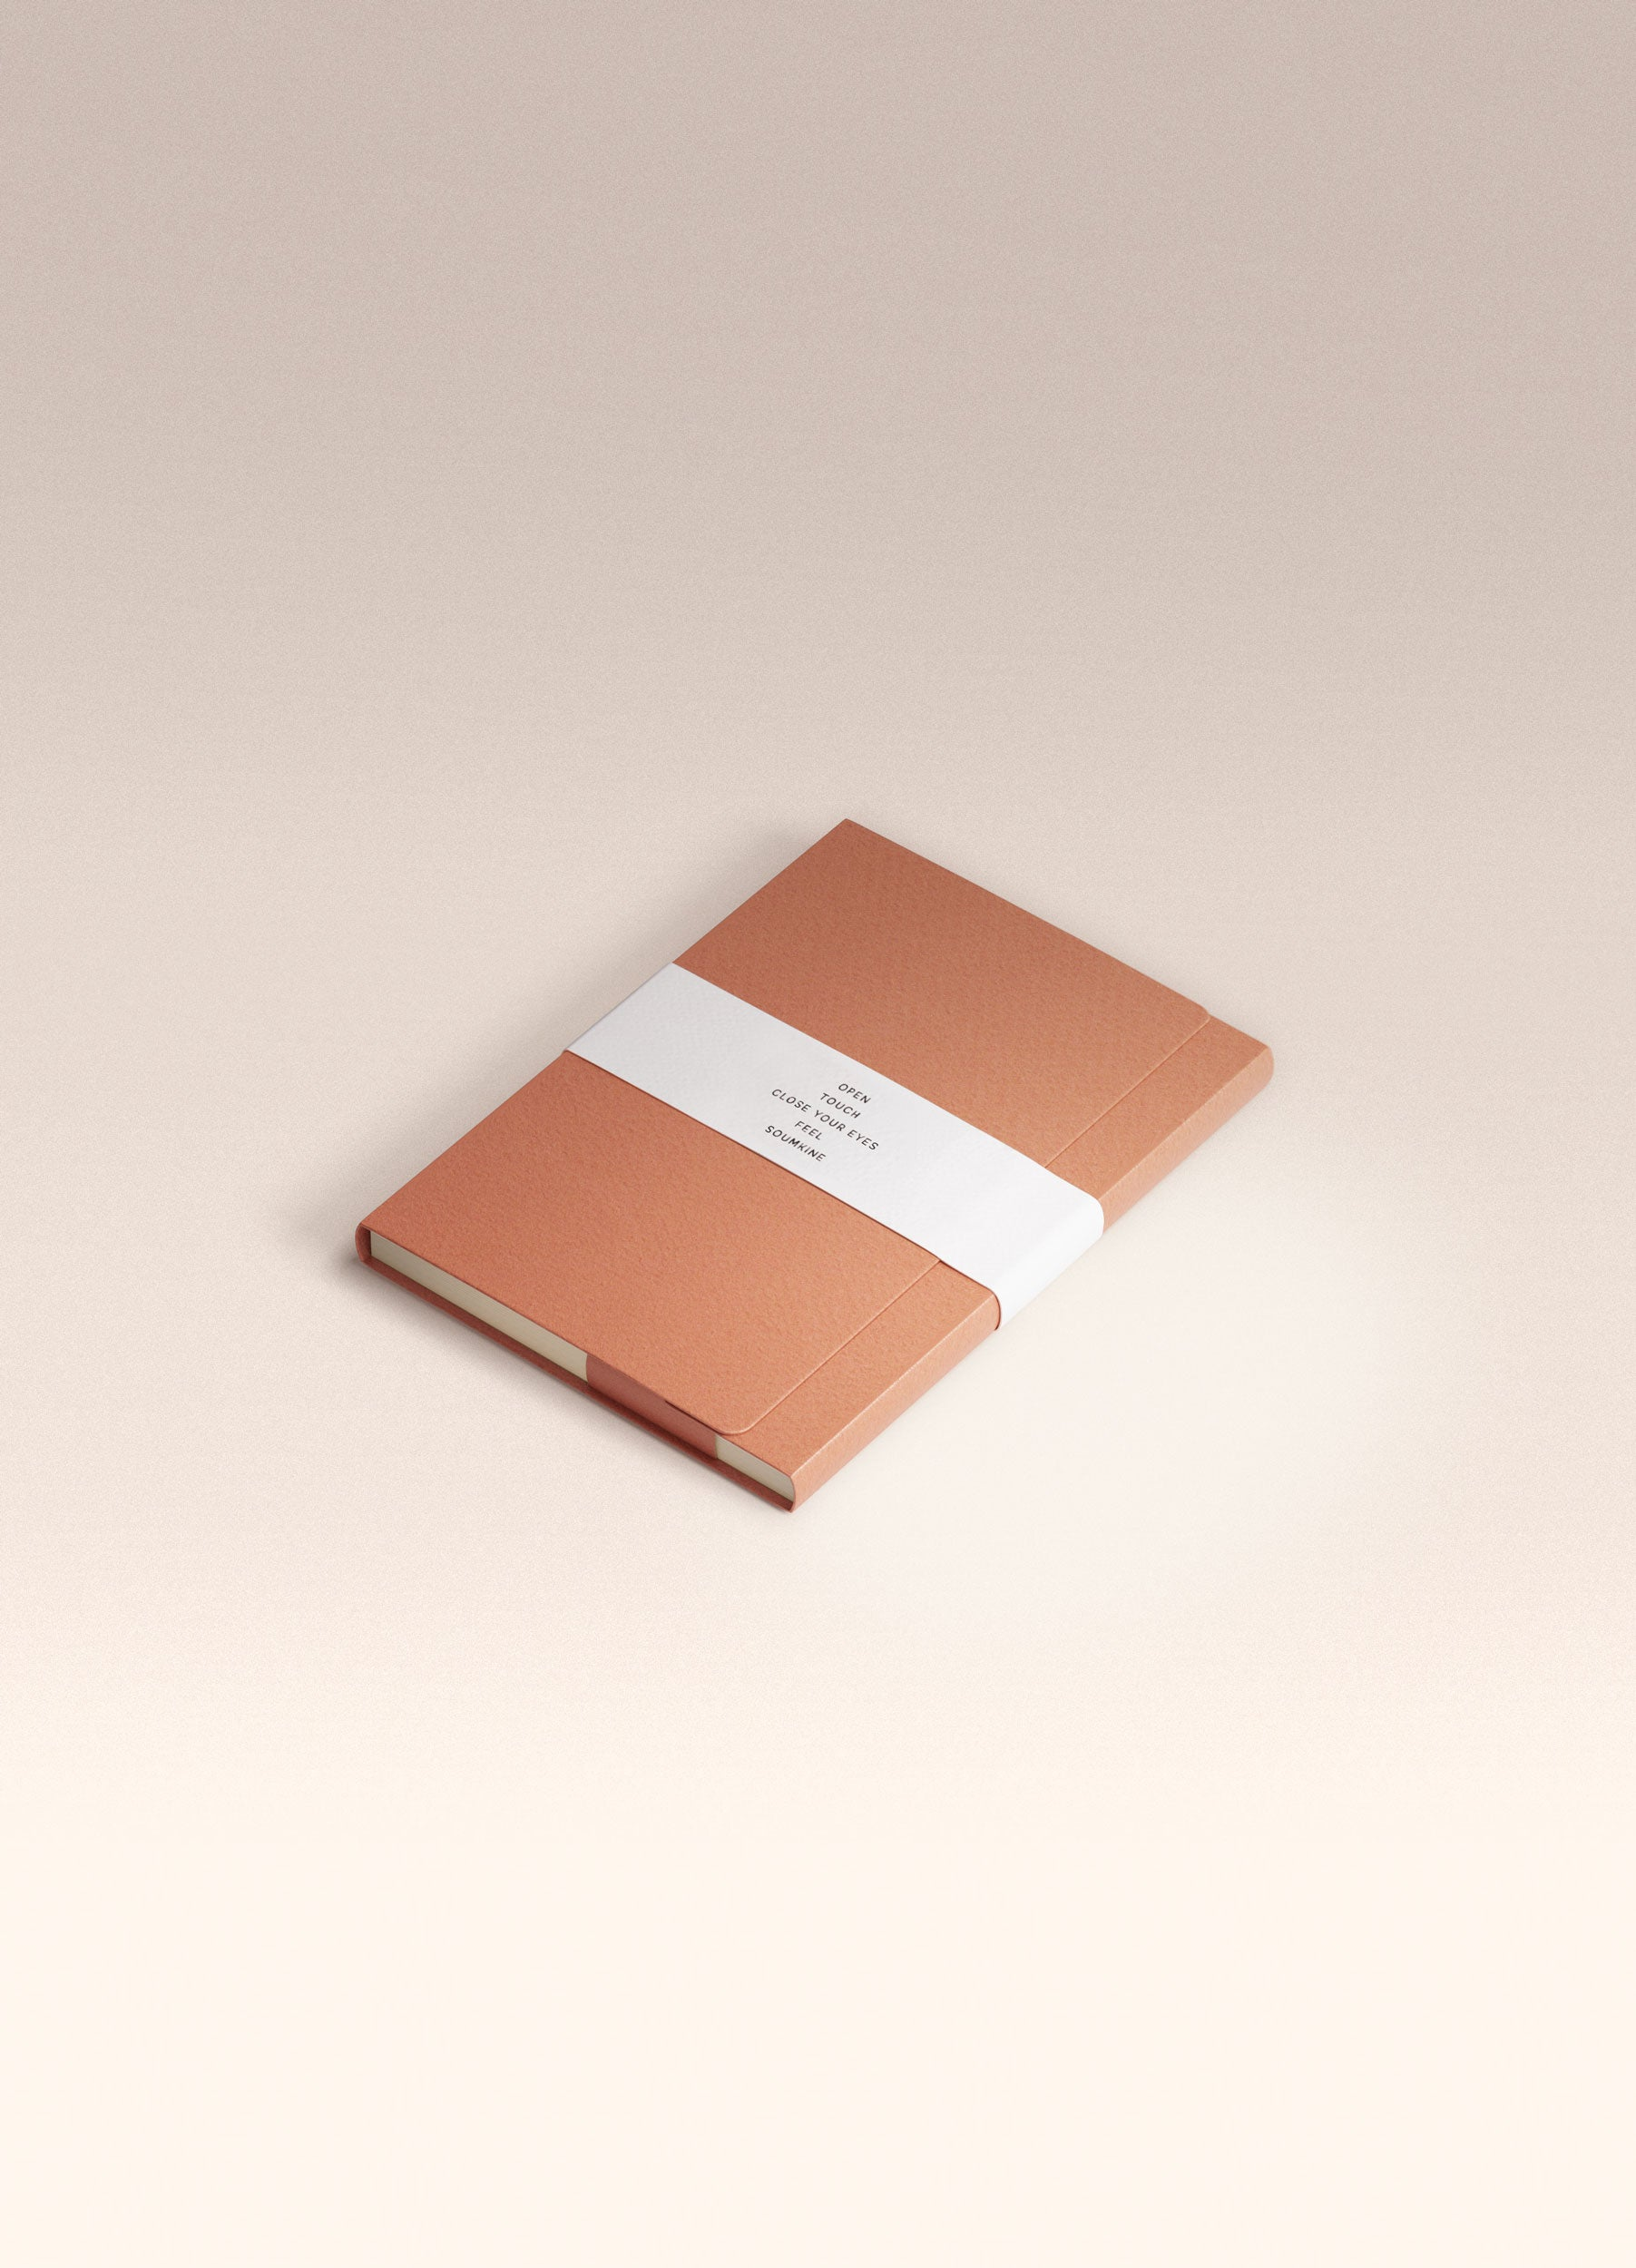 N.208 (RULED) Notebook. B6 size